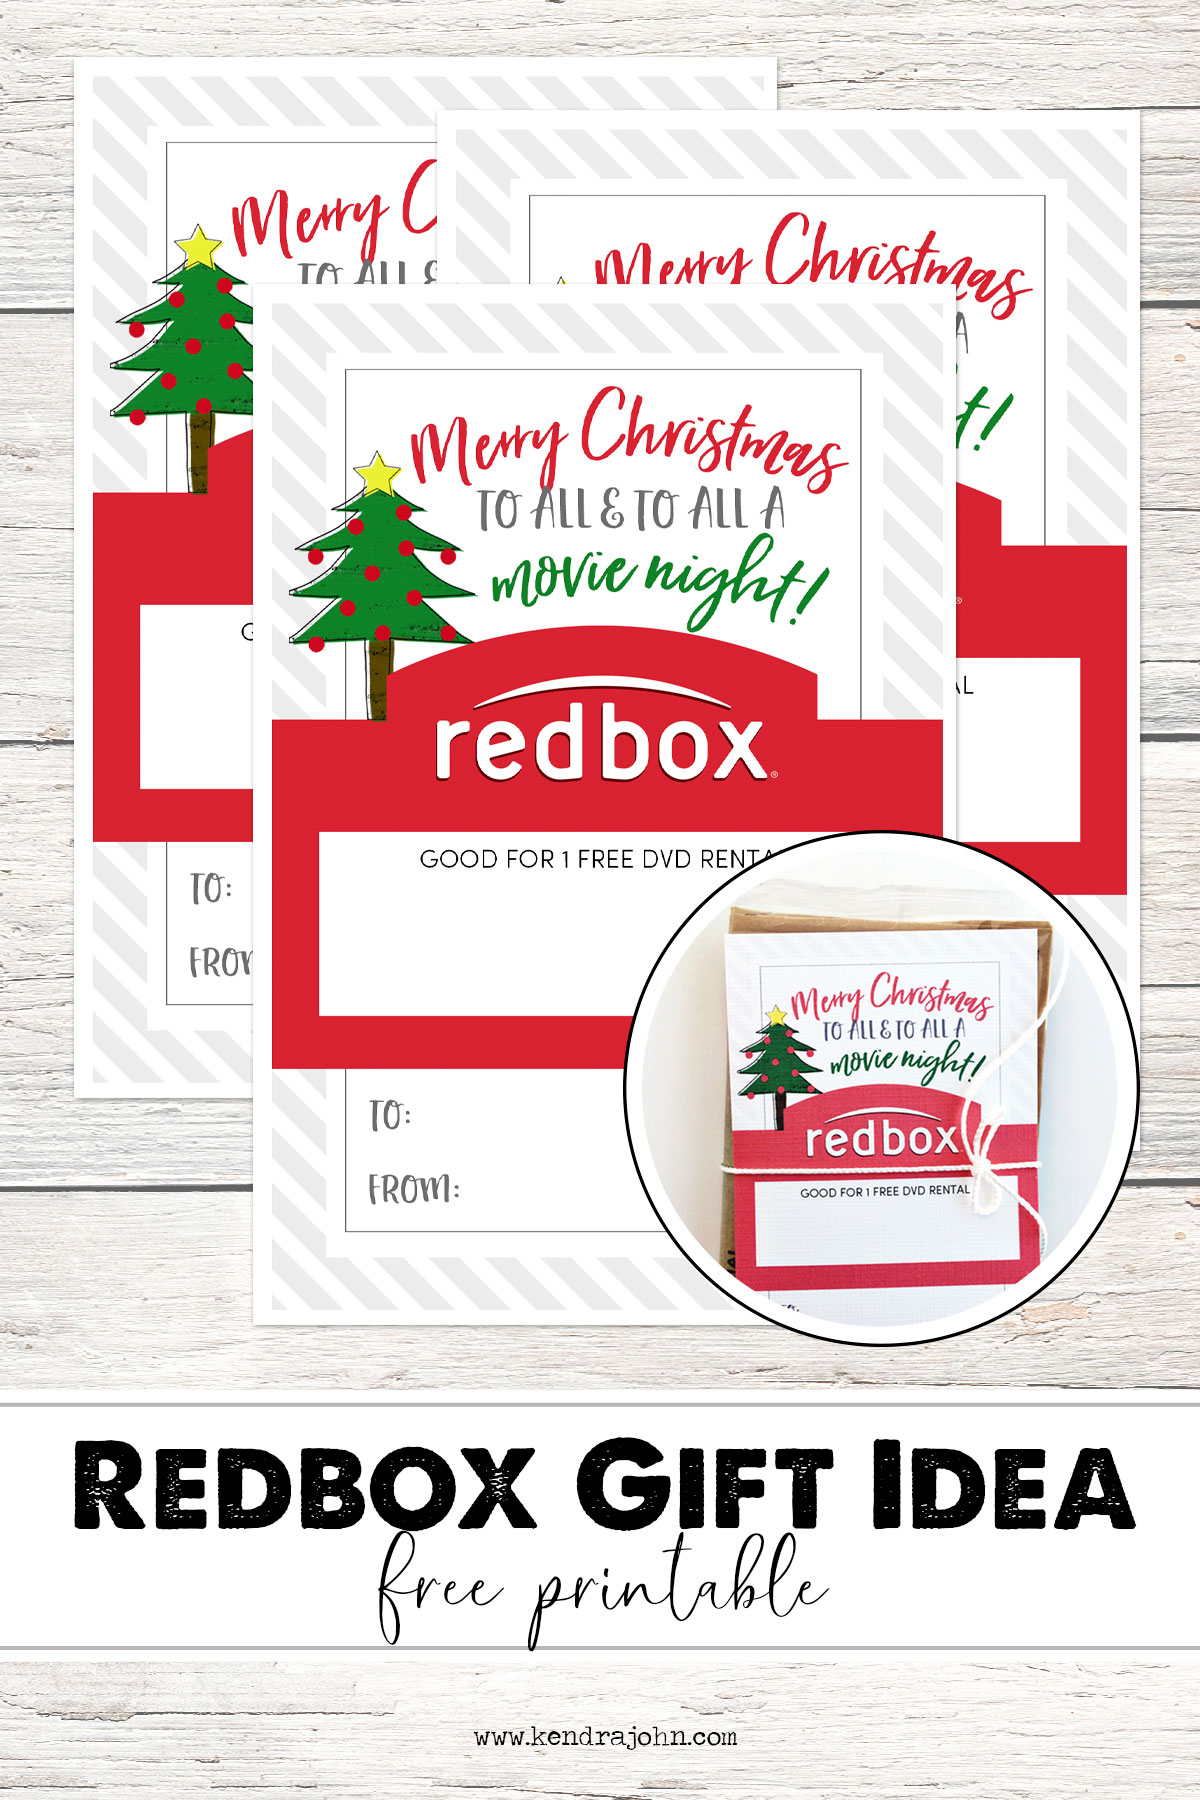 photograph regarding Printable Redbox Gift Cards called Redbox Xmas Reward Notion - Primary Lime Electronic Types